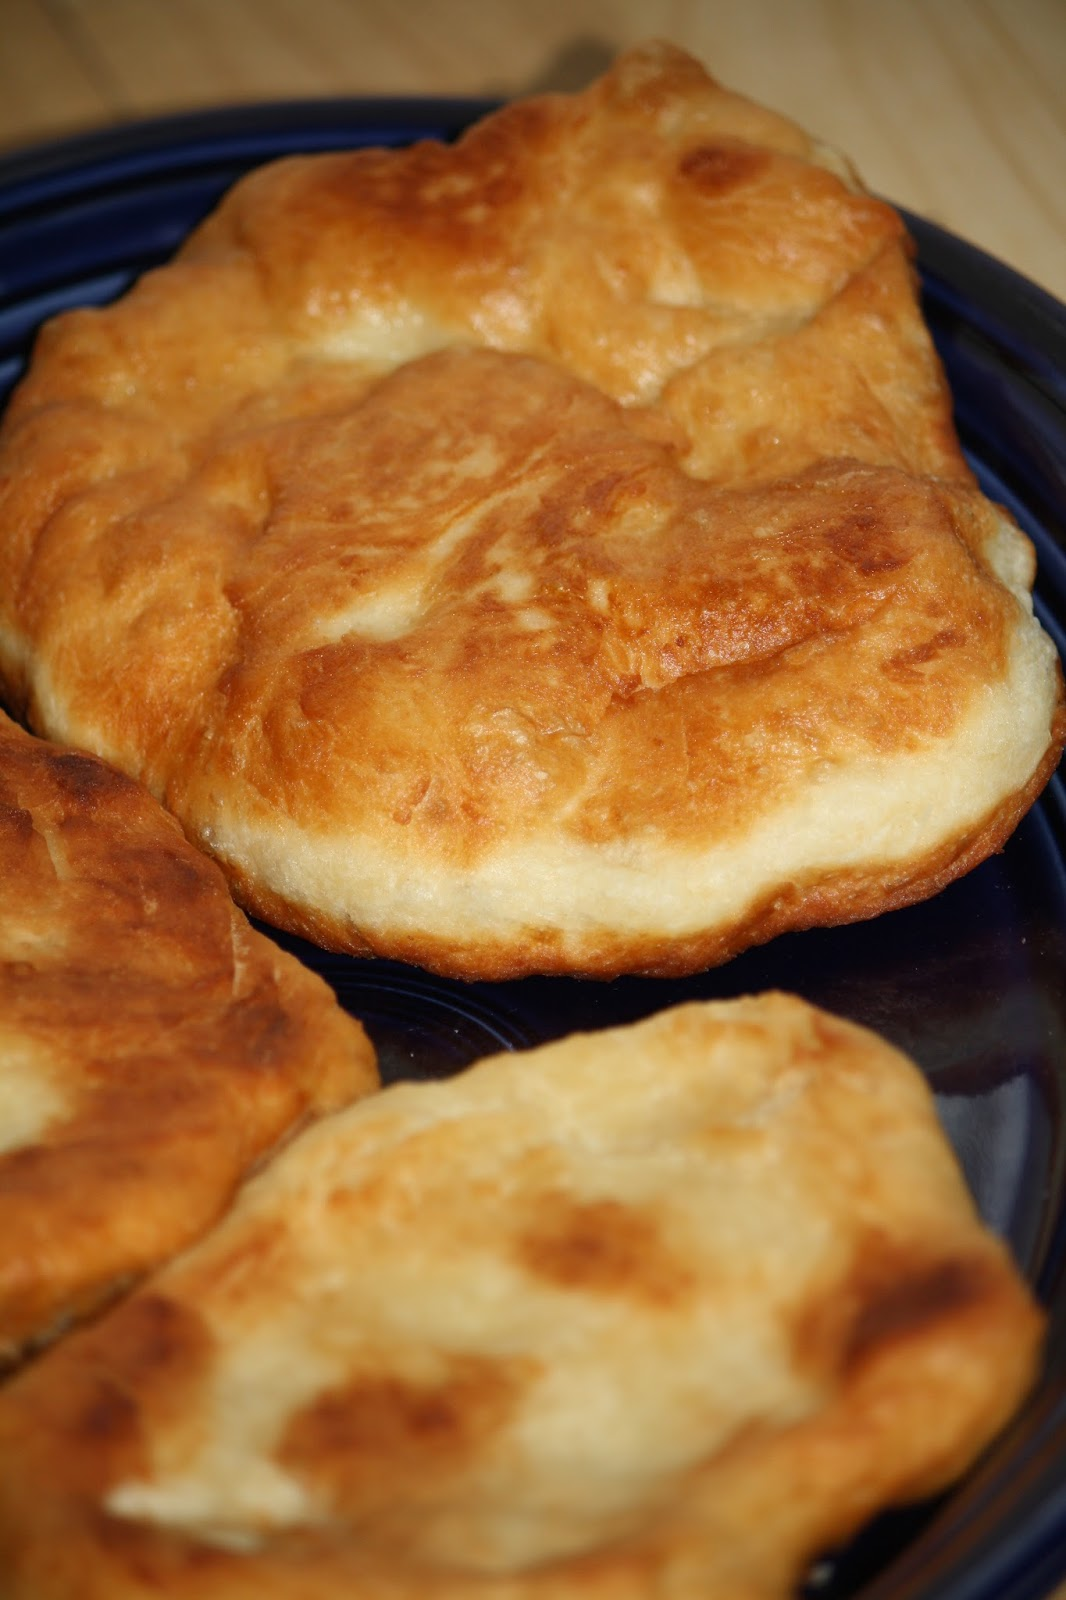 dubs cafe: Scones AKA Indian fry bread